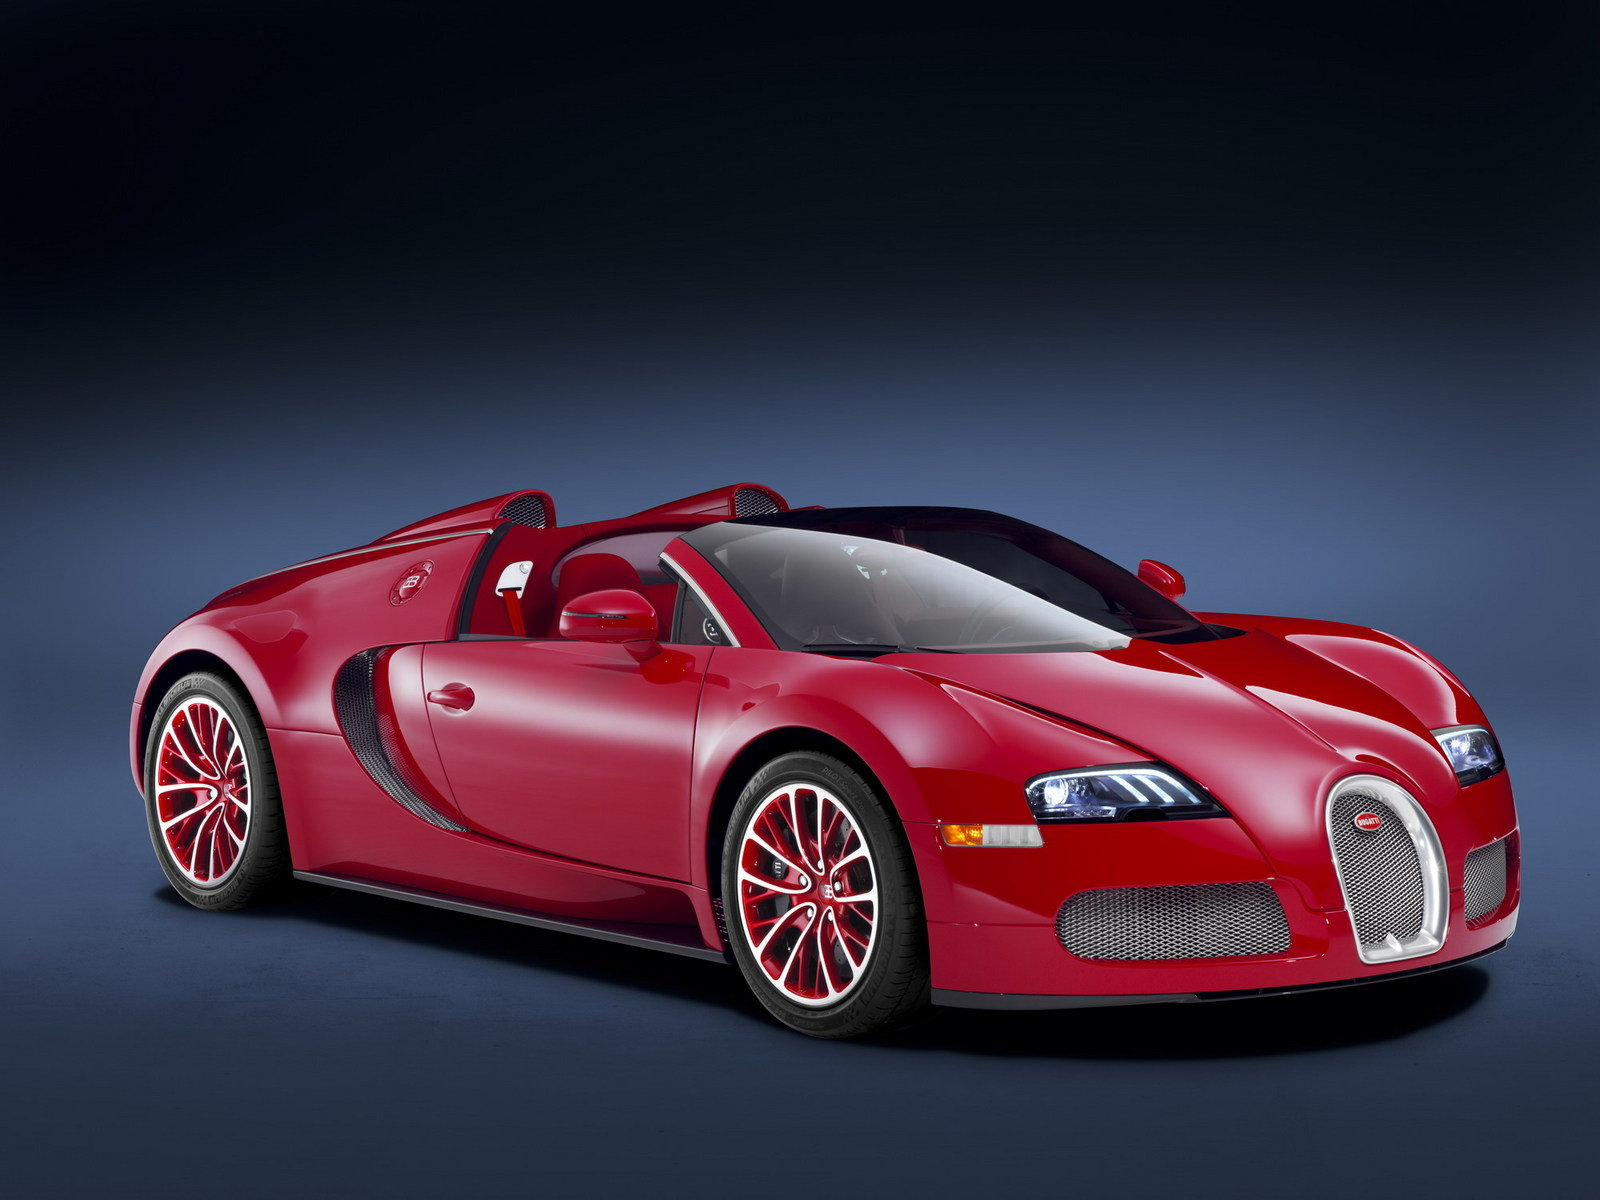 2011 bugatti veyron grand sport red edition picture. Black Bedroom Furniture Sets. Home Design Ideas